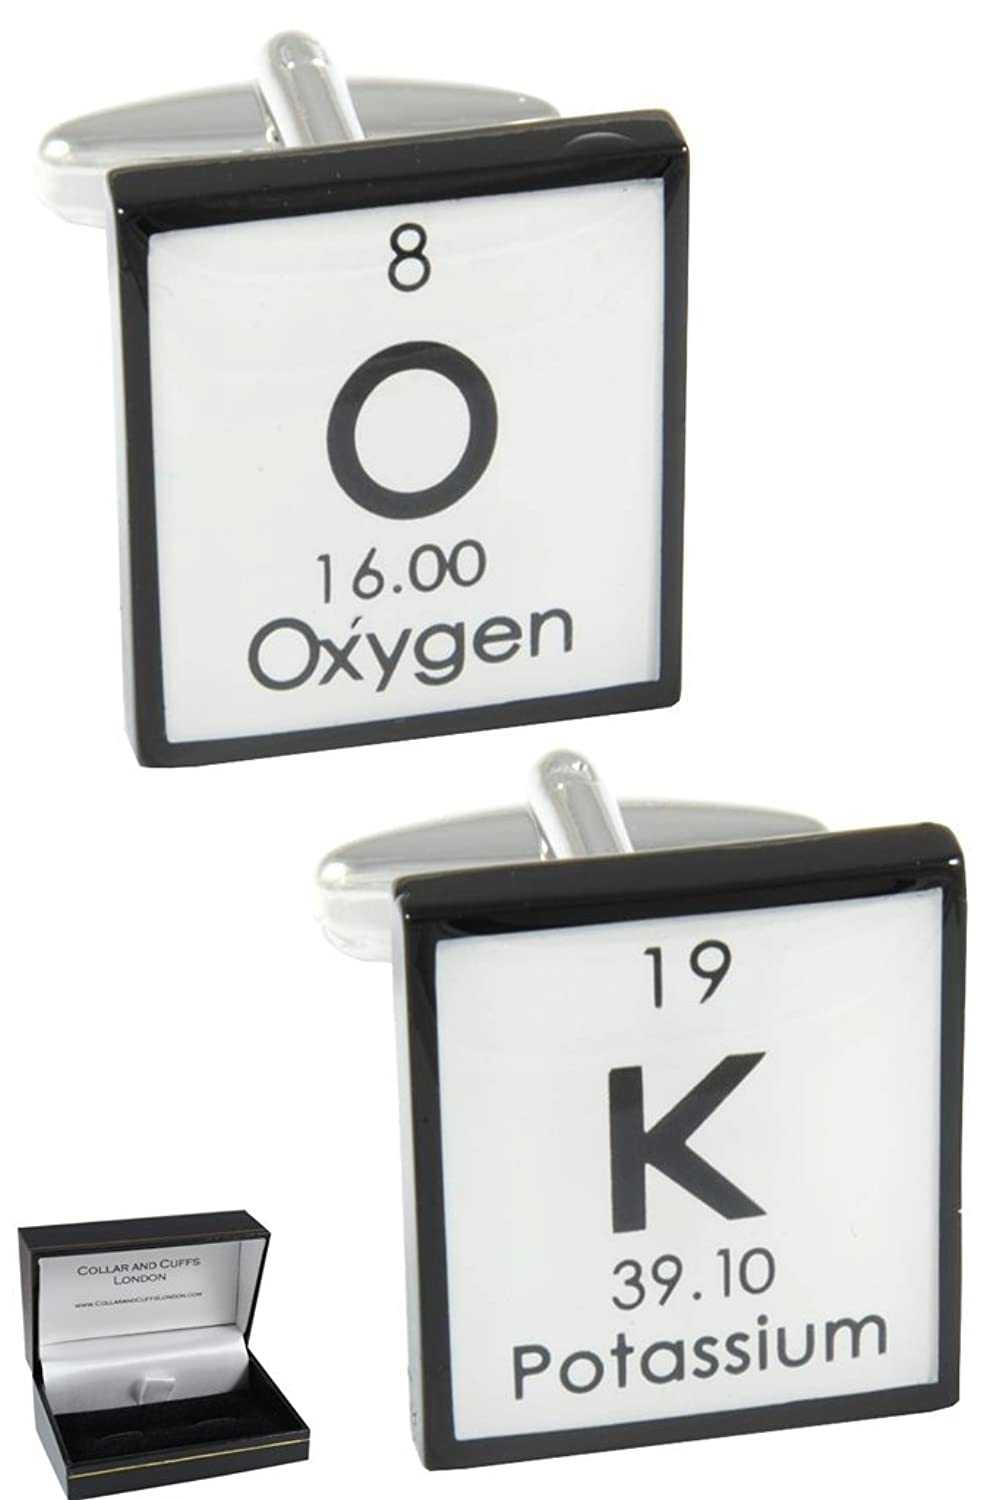 """COLLAR AND CUFFS LONDON - PREMIUM Cufflinks WITH GIFT BOX - """"OK"""" - Solid Brass - Periodic Table Chemical Symbols - Square - Black and White Colours"""